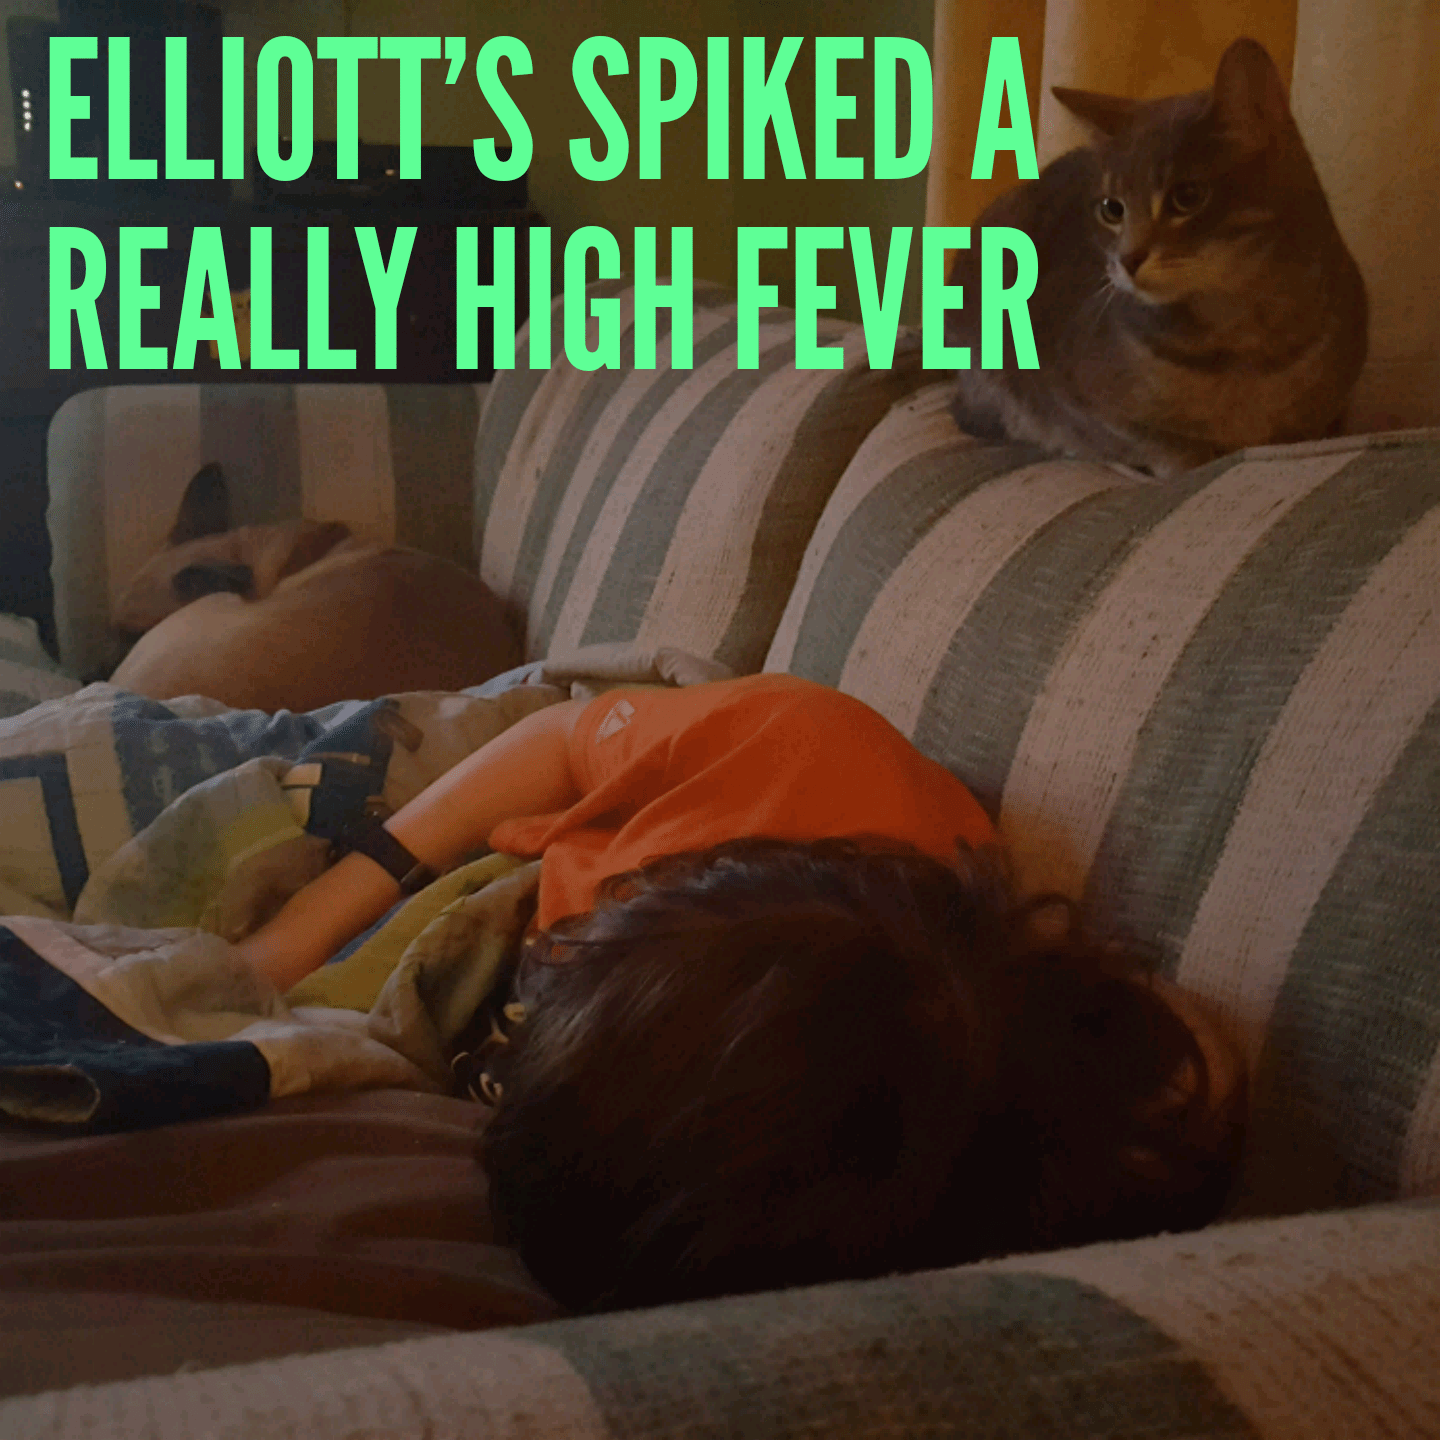 Elliott's spiked a really high fever